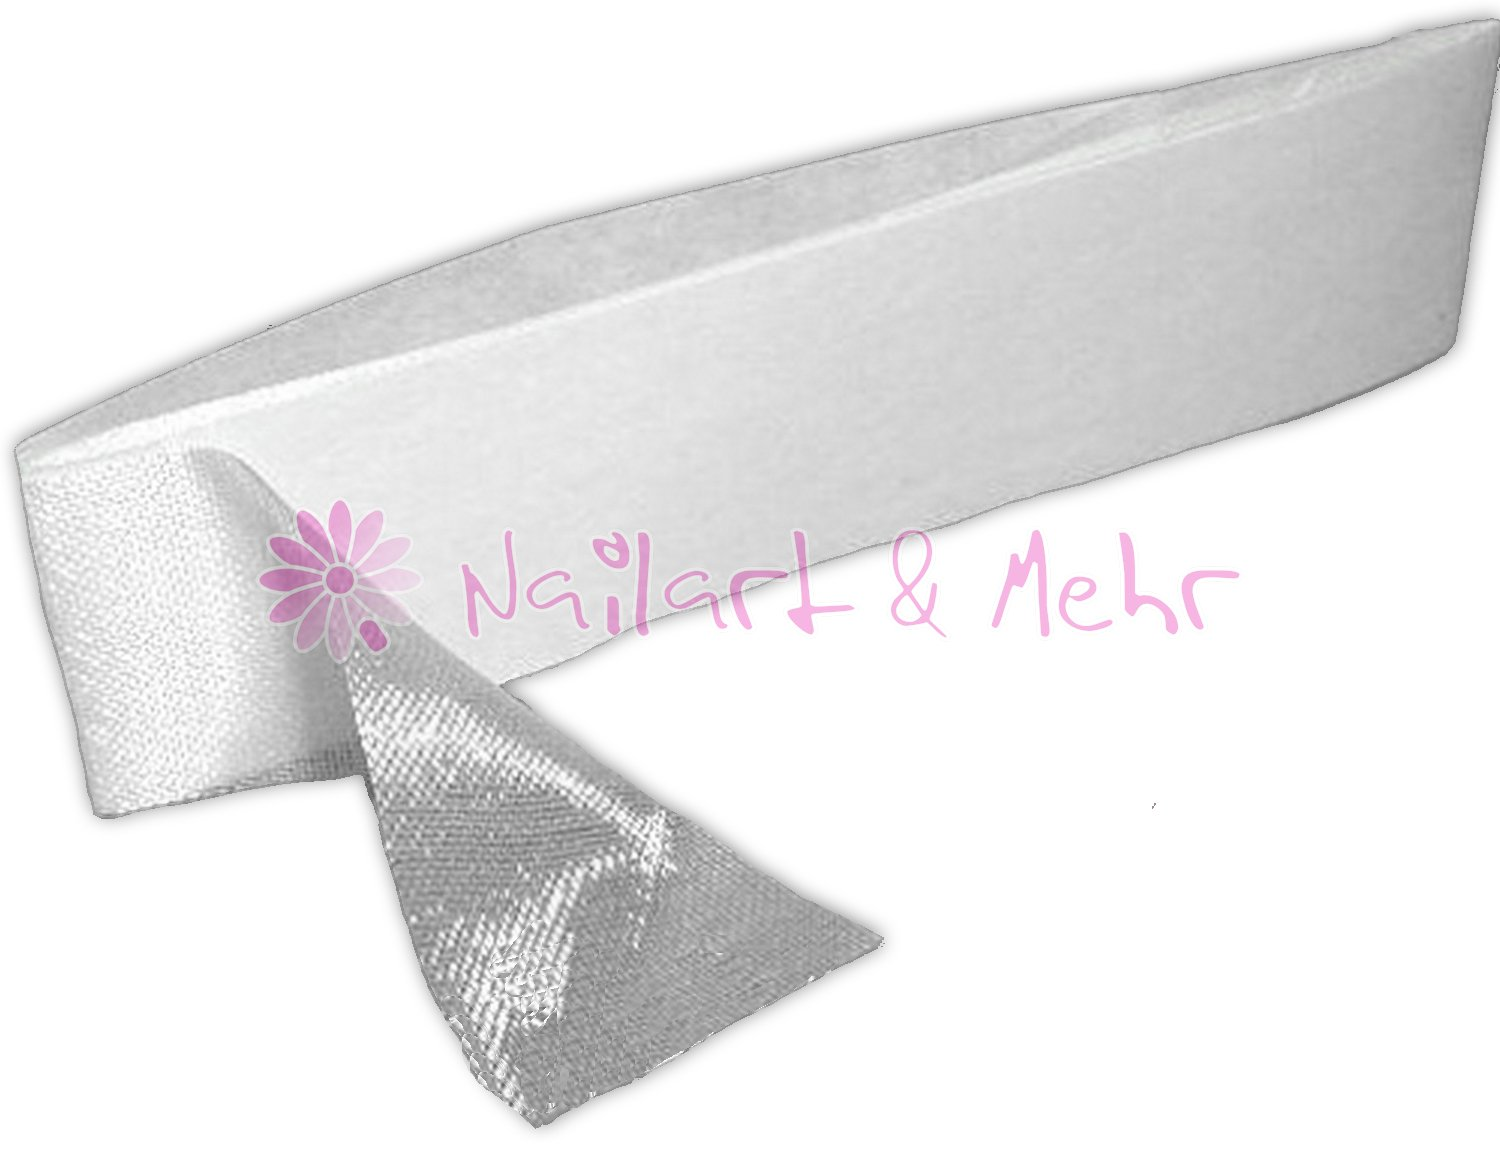 Fibreglass Cloth/Fibreglass Strip Adhesive 90 cm NAILART & MEHR